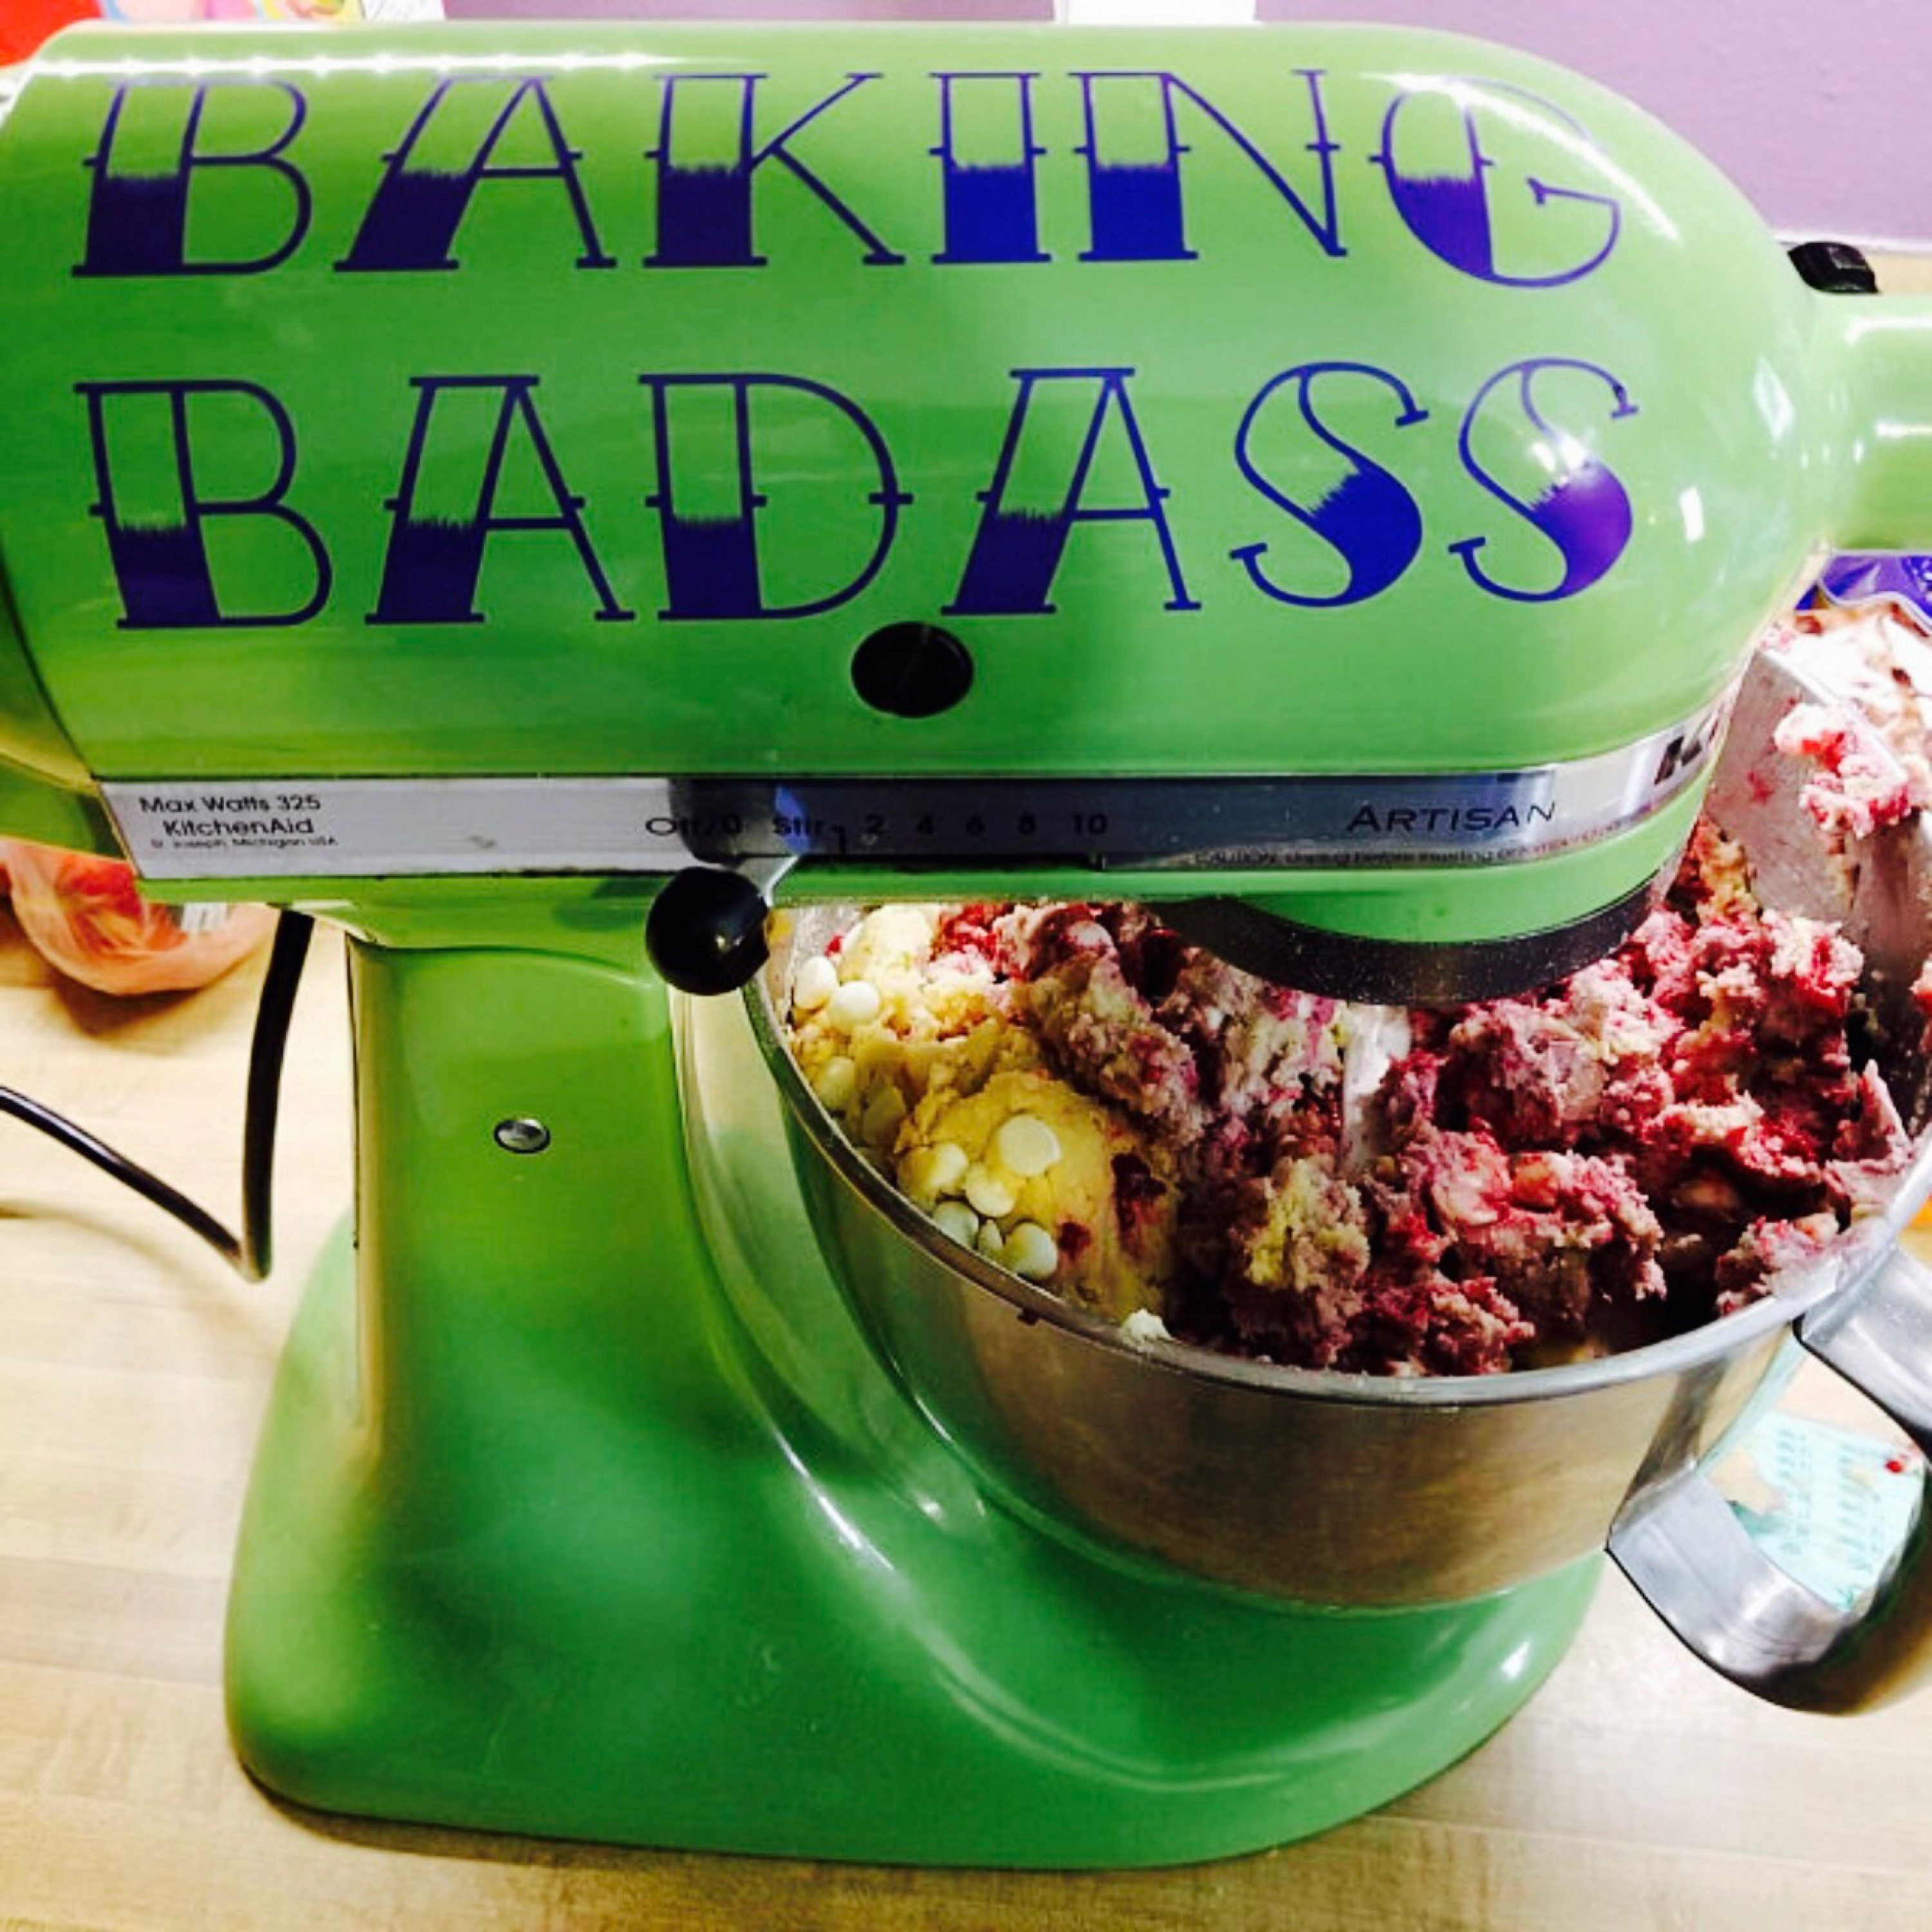 Kitchen Aid Mixer Decal Standup Mixer Decal Baking Badass